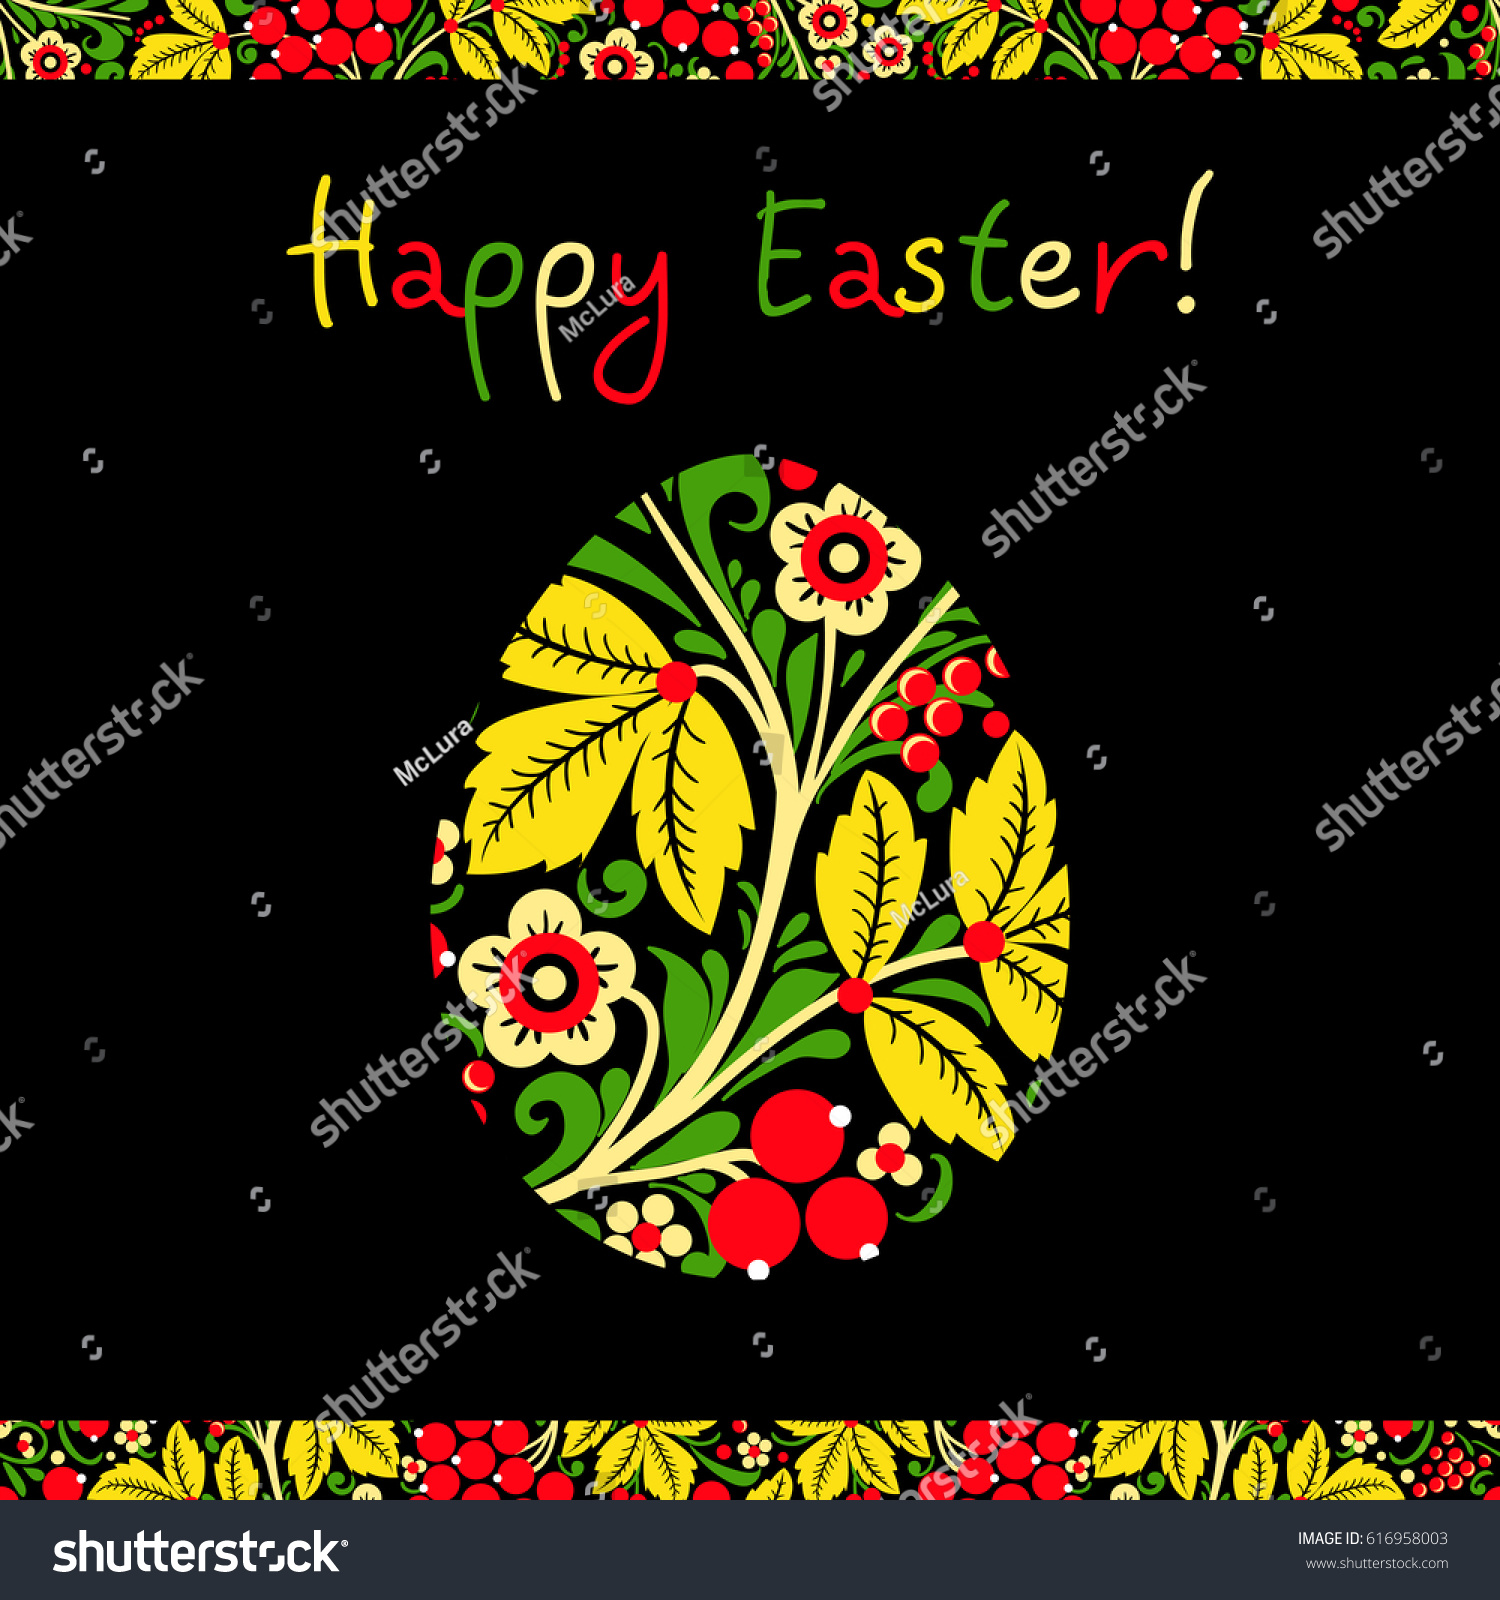 Greeting card with a happy easter the egg is painted with a flower greeting card with a happy easter the egg is painted with a flower pattern ez canvas m4hsunfo